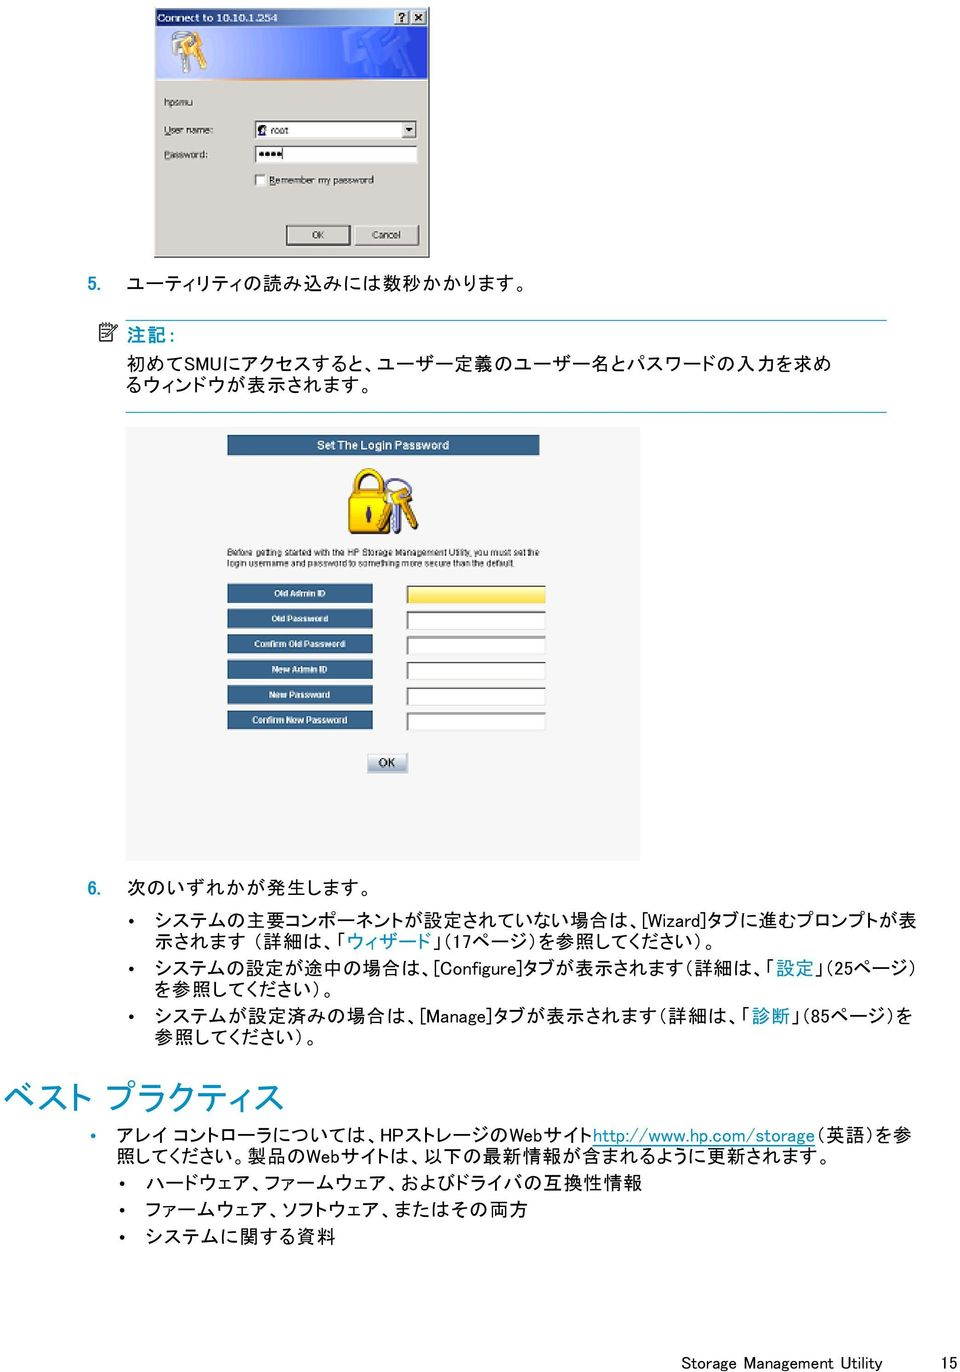 HP Storage Management Utility user guide - PDF